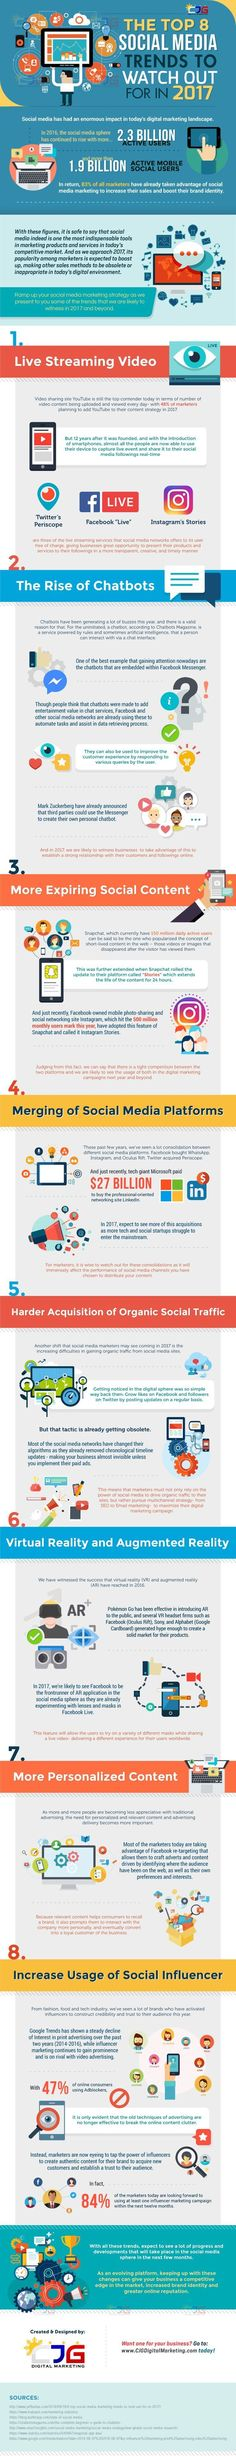 Top 8 hottest social media marketing trends in 2017 (Infographic)